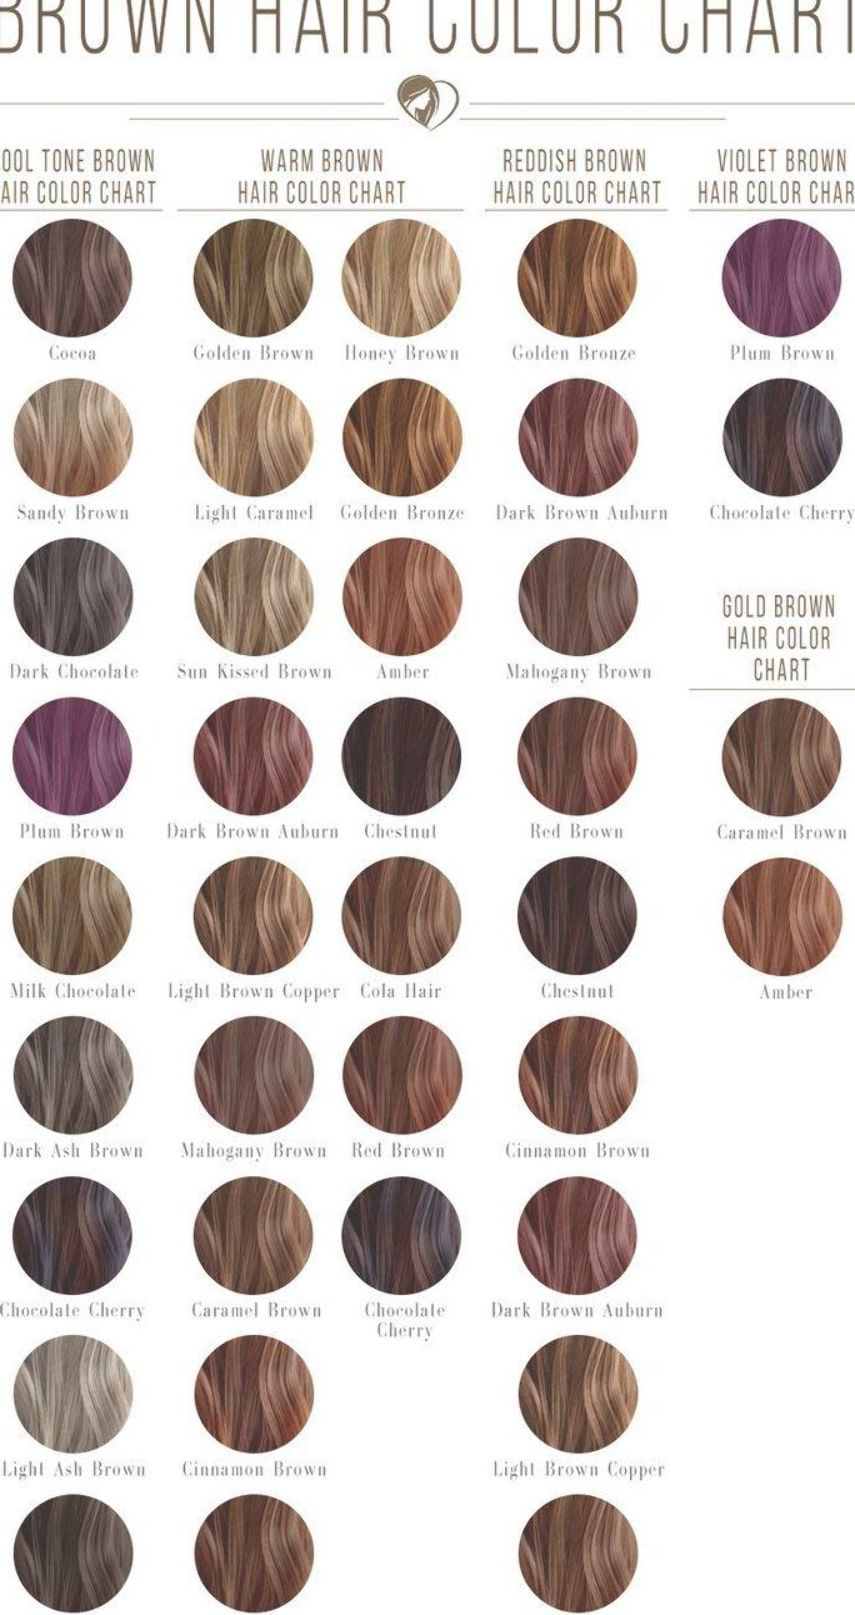 Pin By Maci Herman On Hair Color Hair Color Chart Brown Hair Shades Brown Hair Color Chart